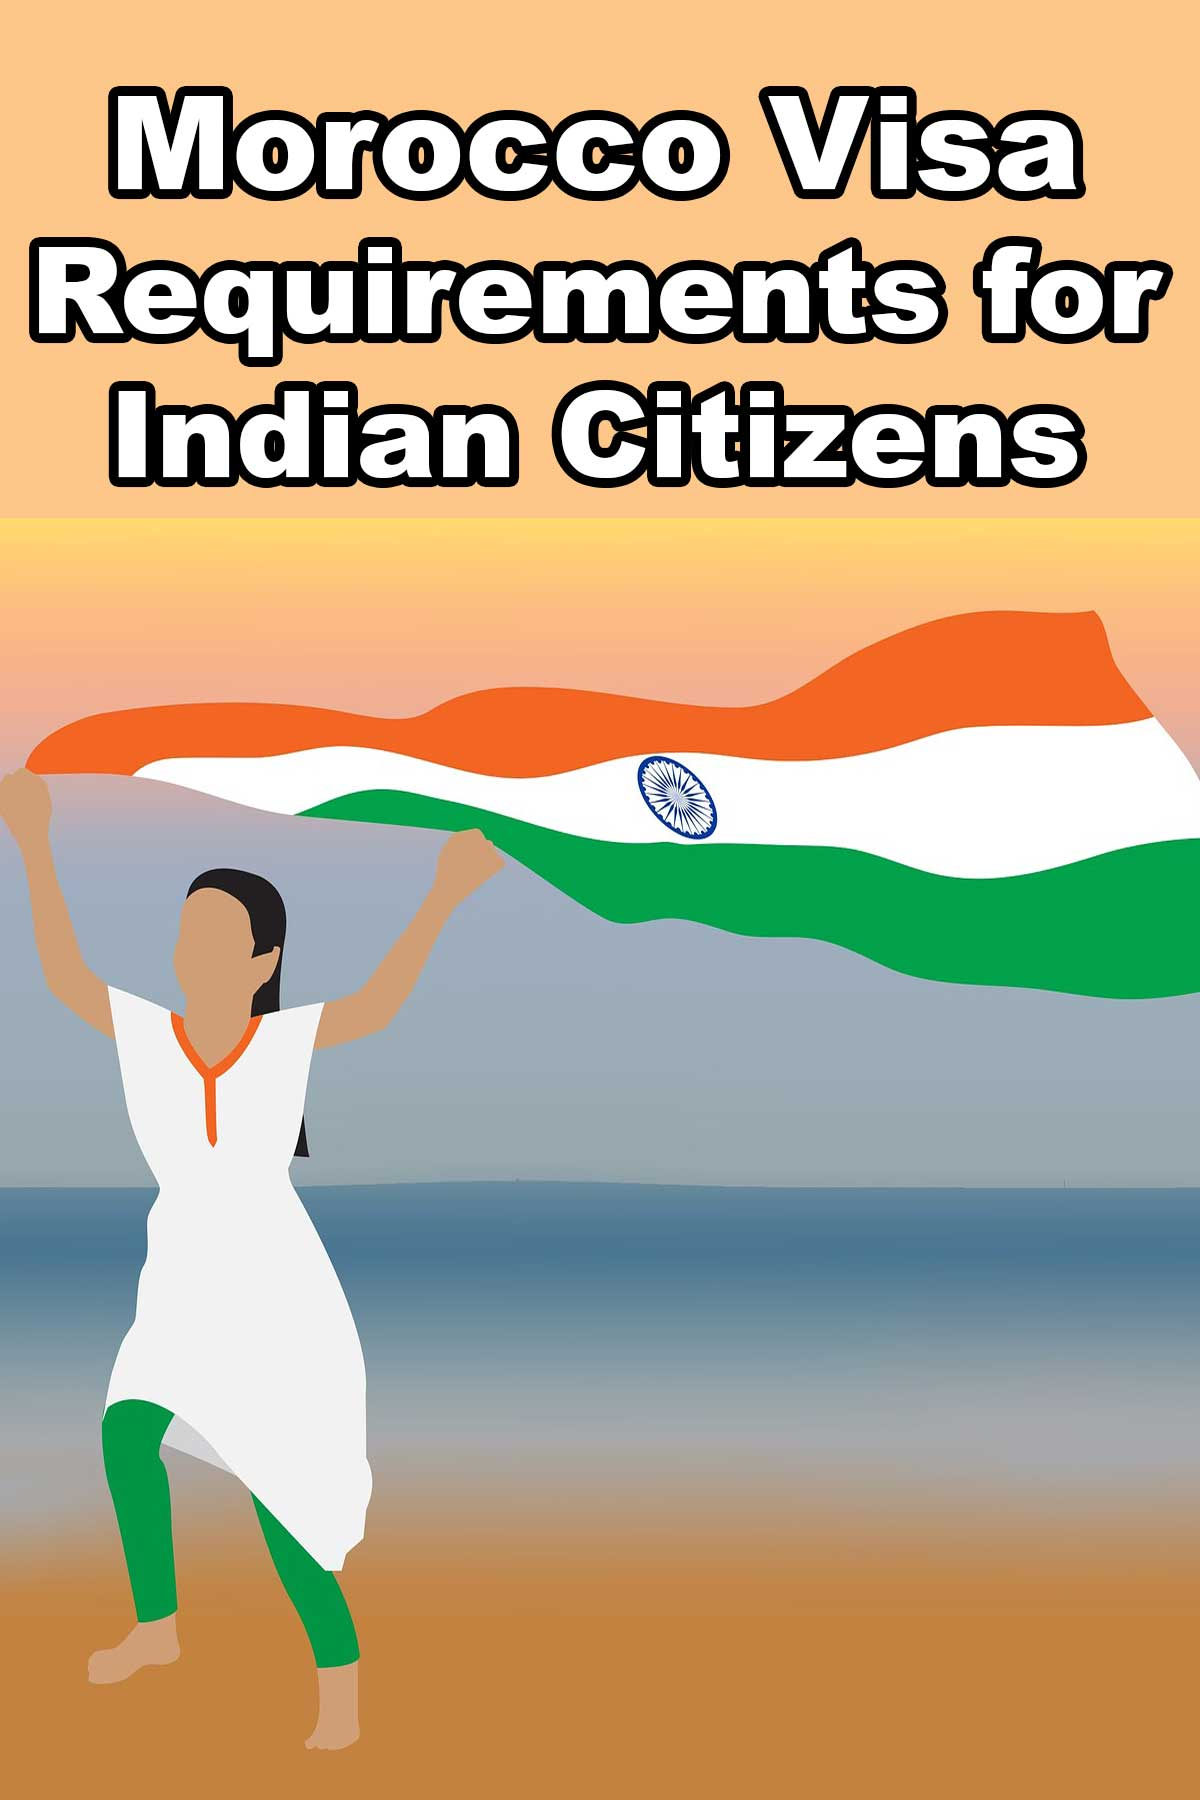 Morocco-Visa-Requirements-for-Indian-Citizens-1